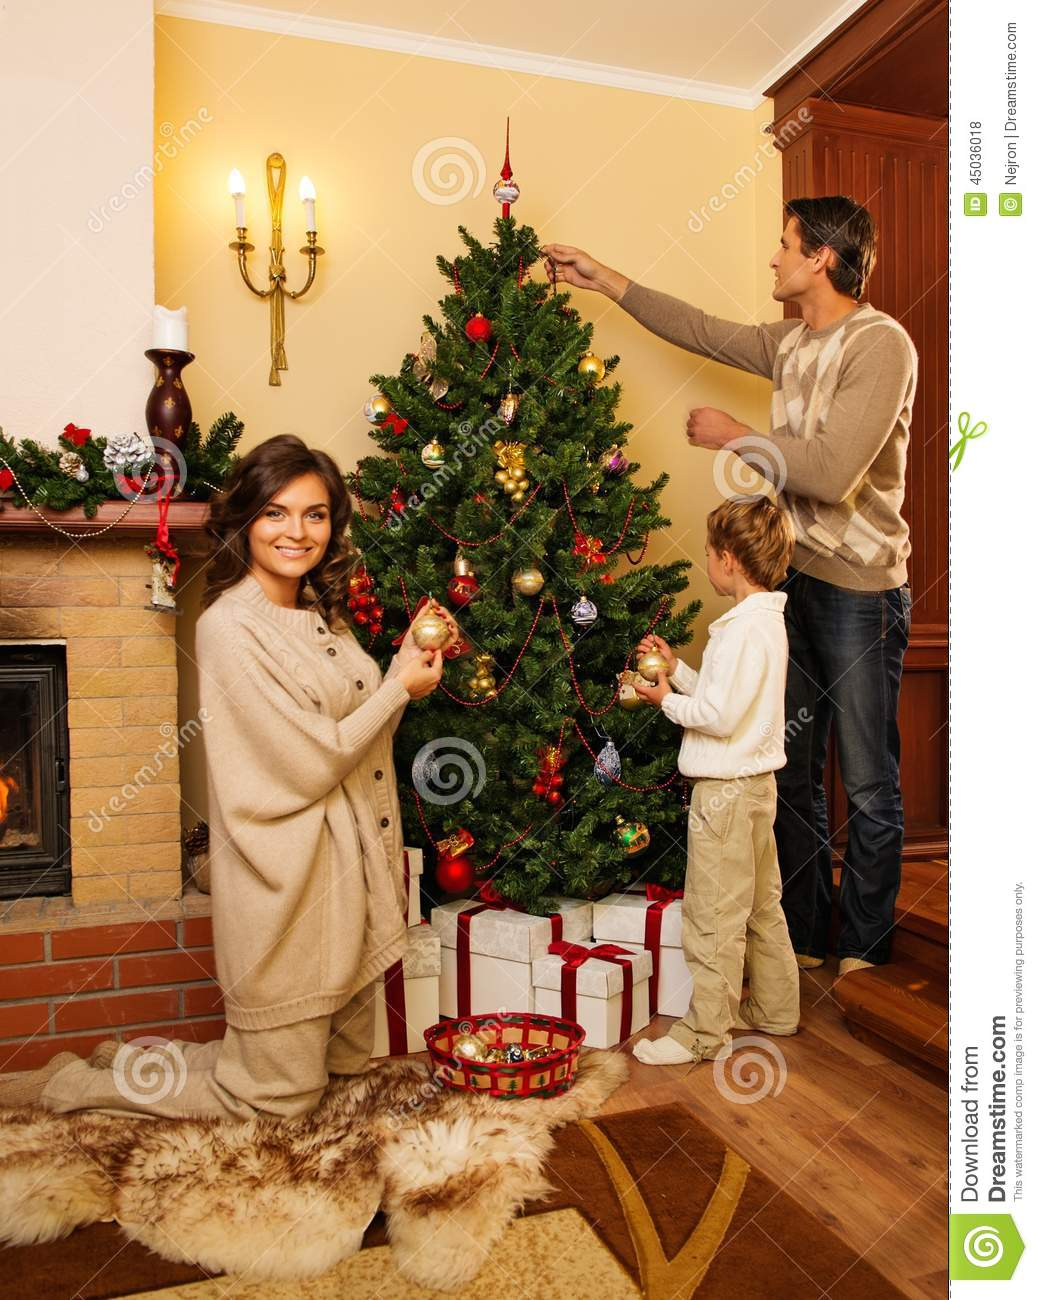 Christmas house interior - Family In Christmas House Interior Stock Photo